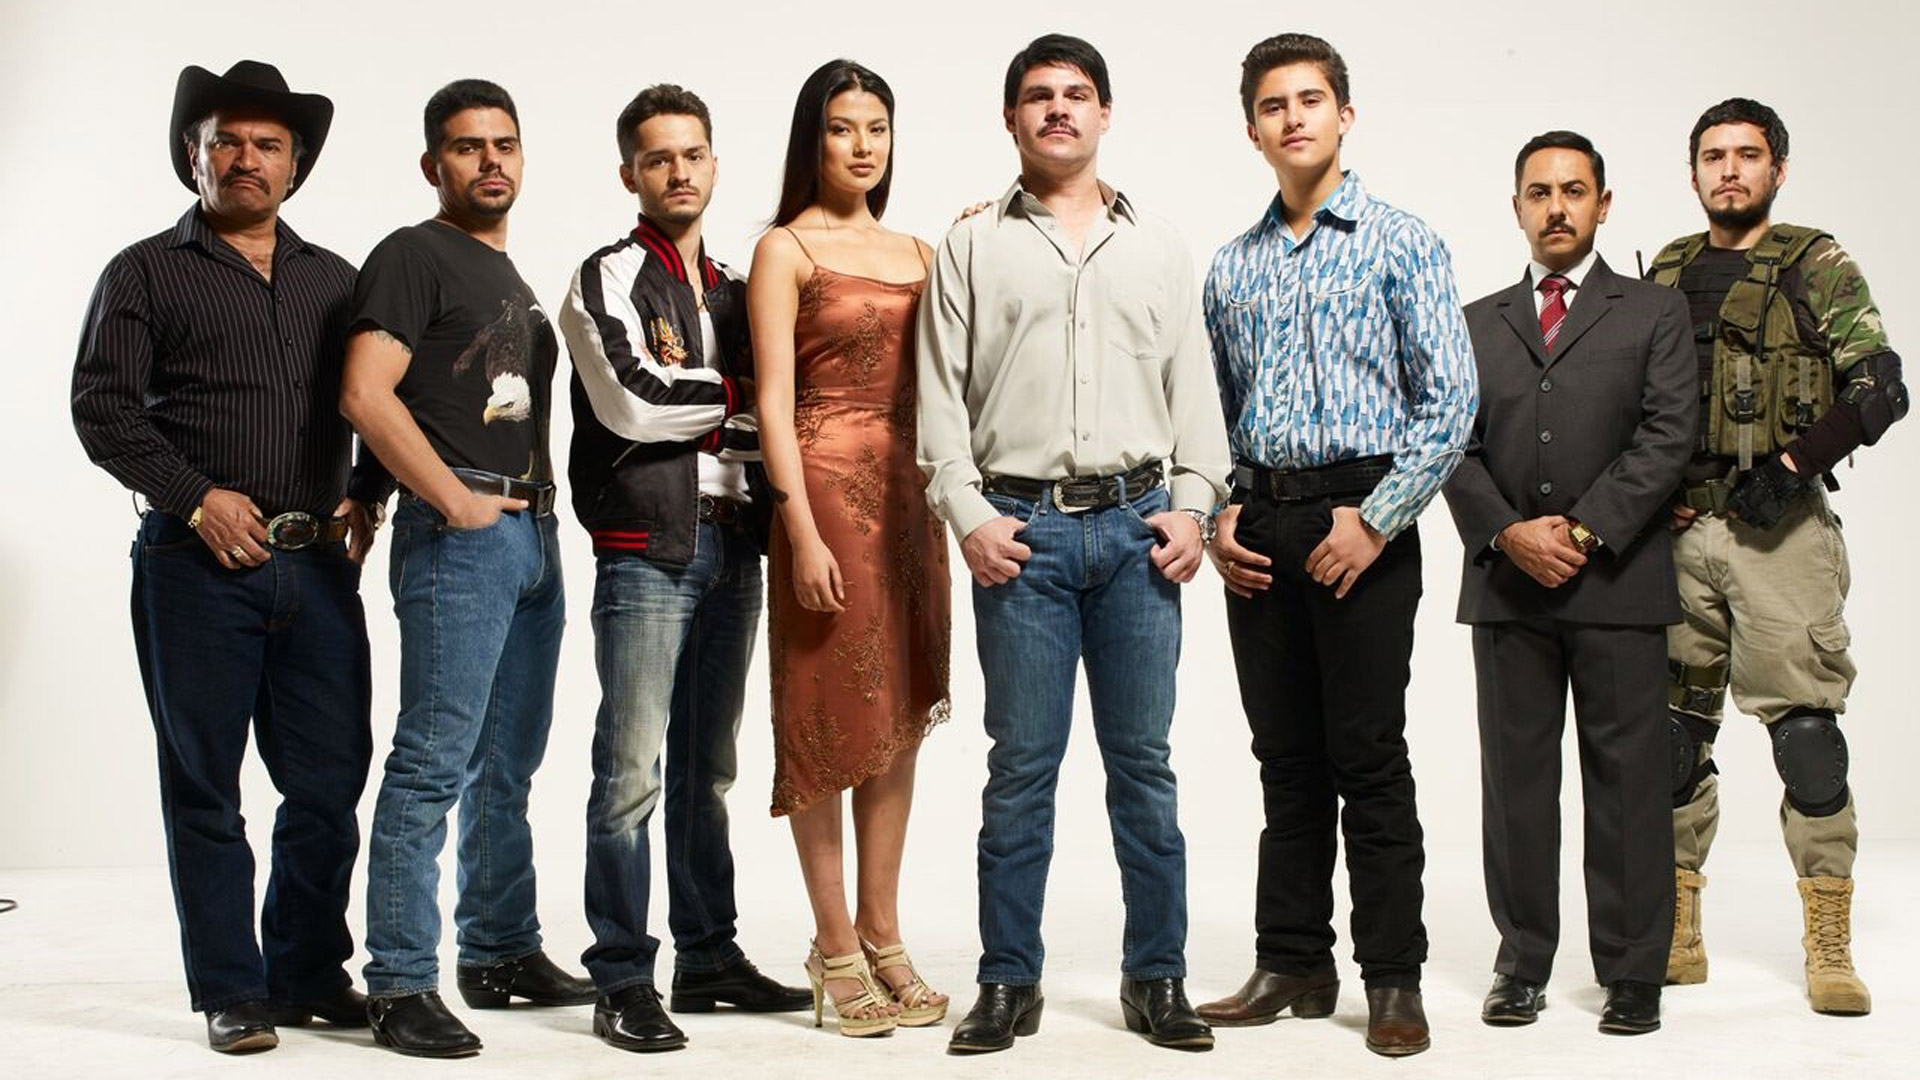 Meet the characters of season 2 of 'El Chapo'